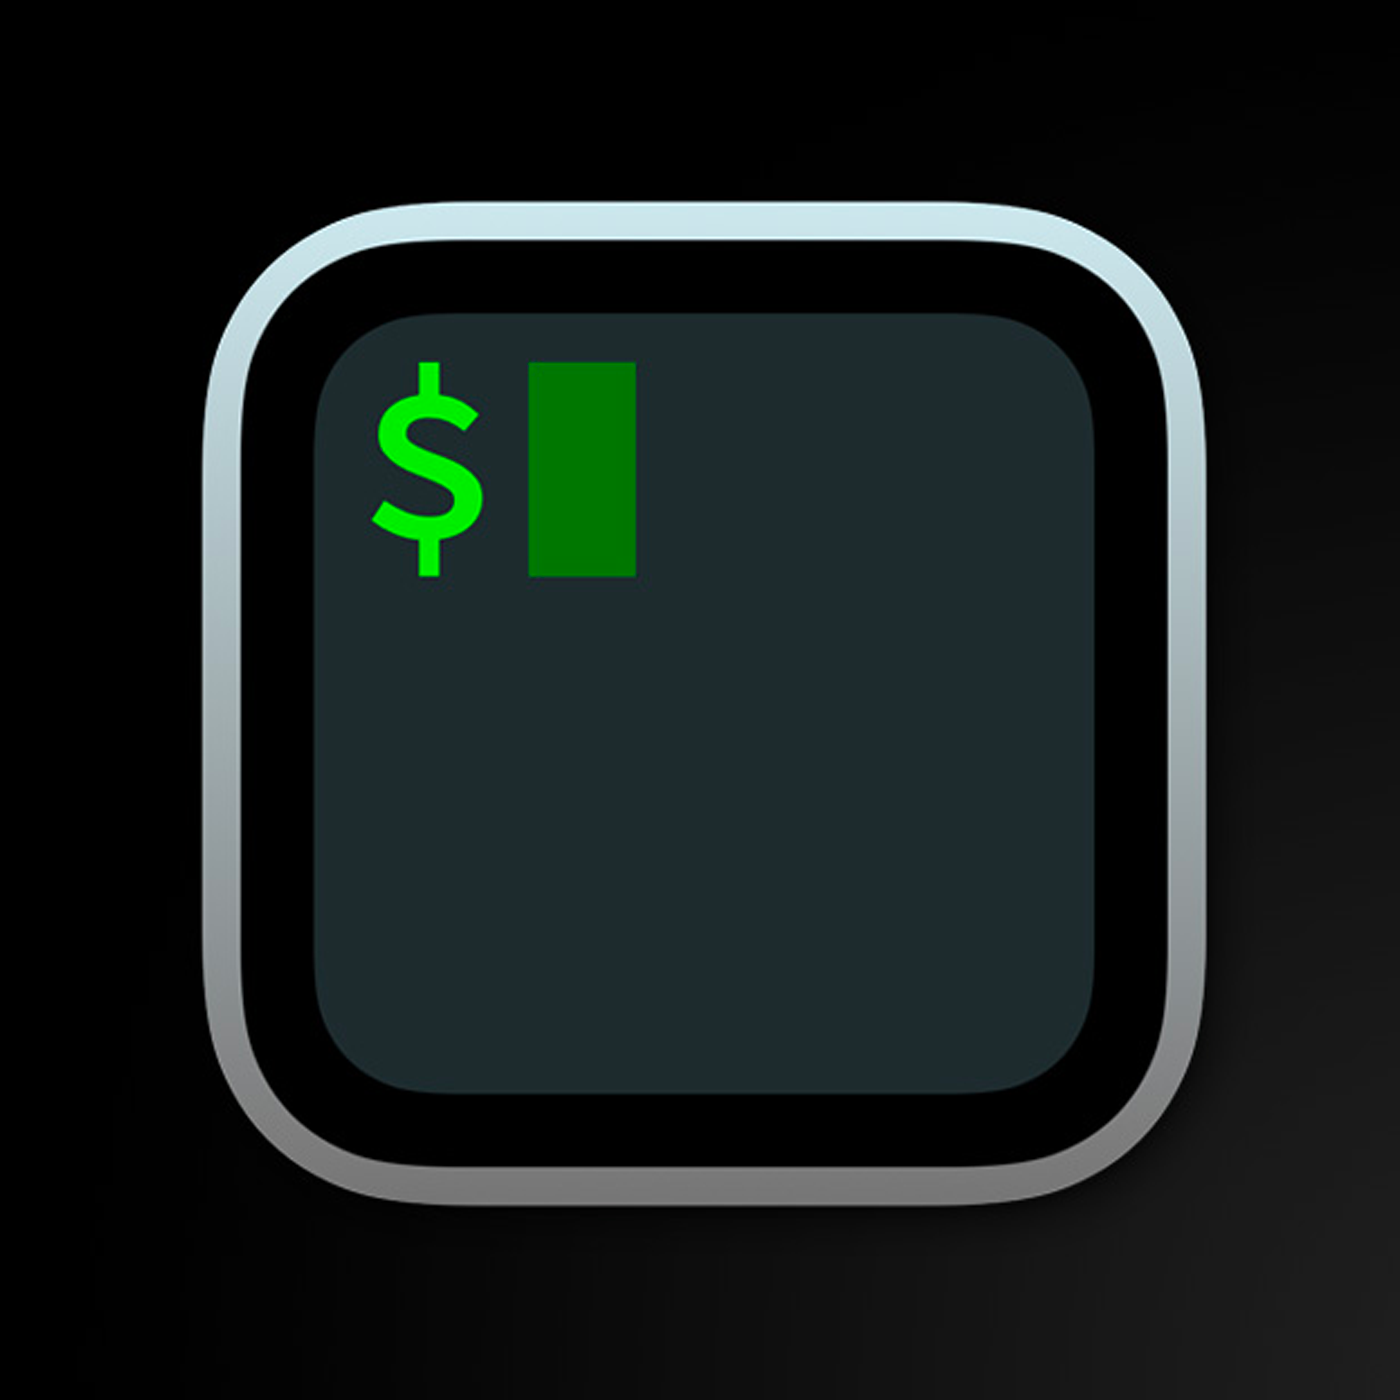 The iTerm2 logo of a $ sign in a terminal